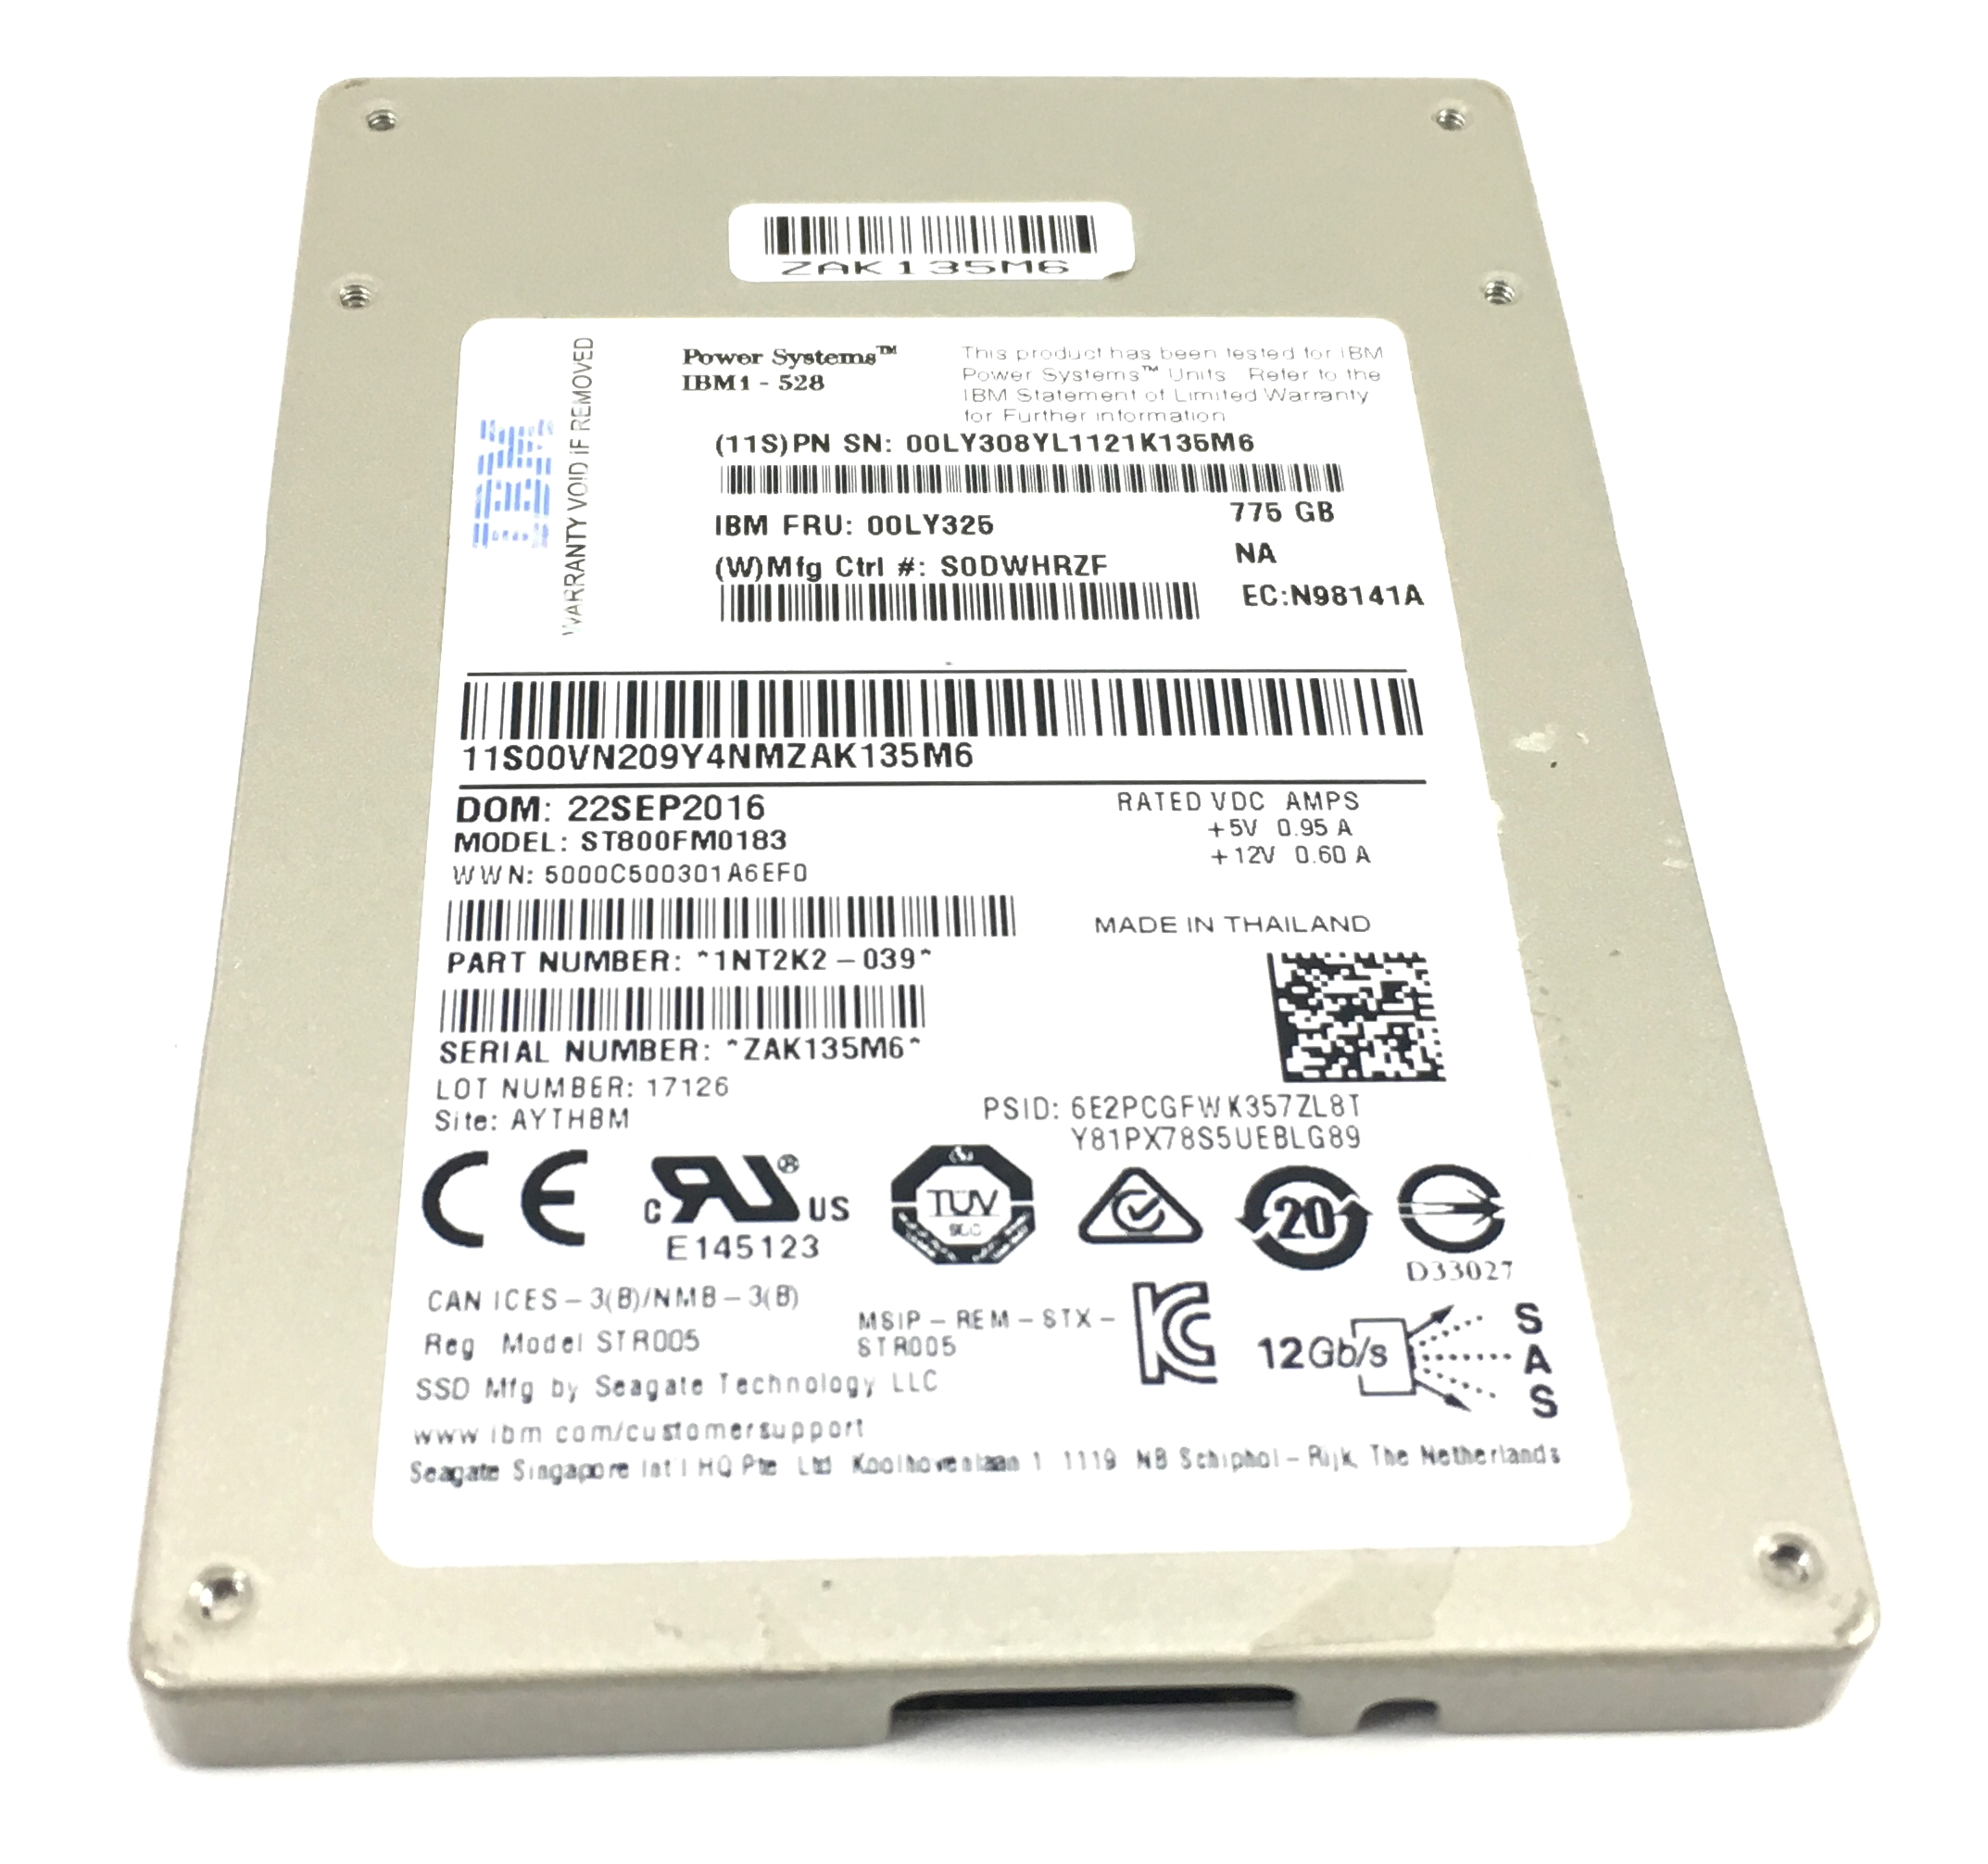 IBM Seagate 775GB 12Gbps SAS 2.5'' SSD SED Solid State Drive (00LY325)